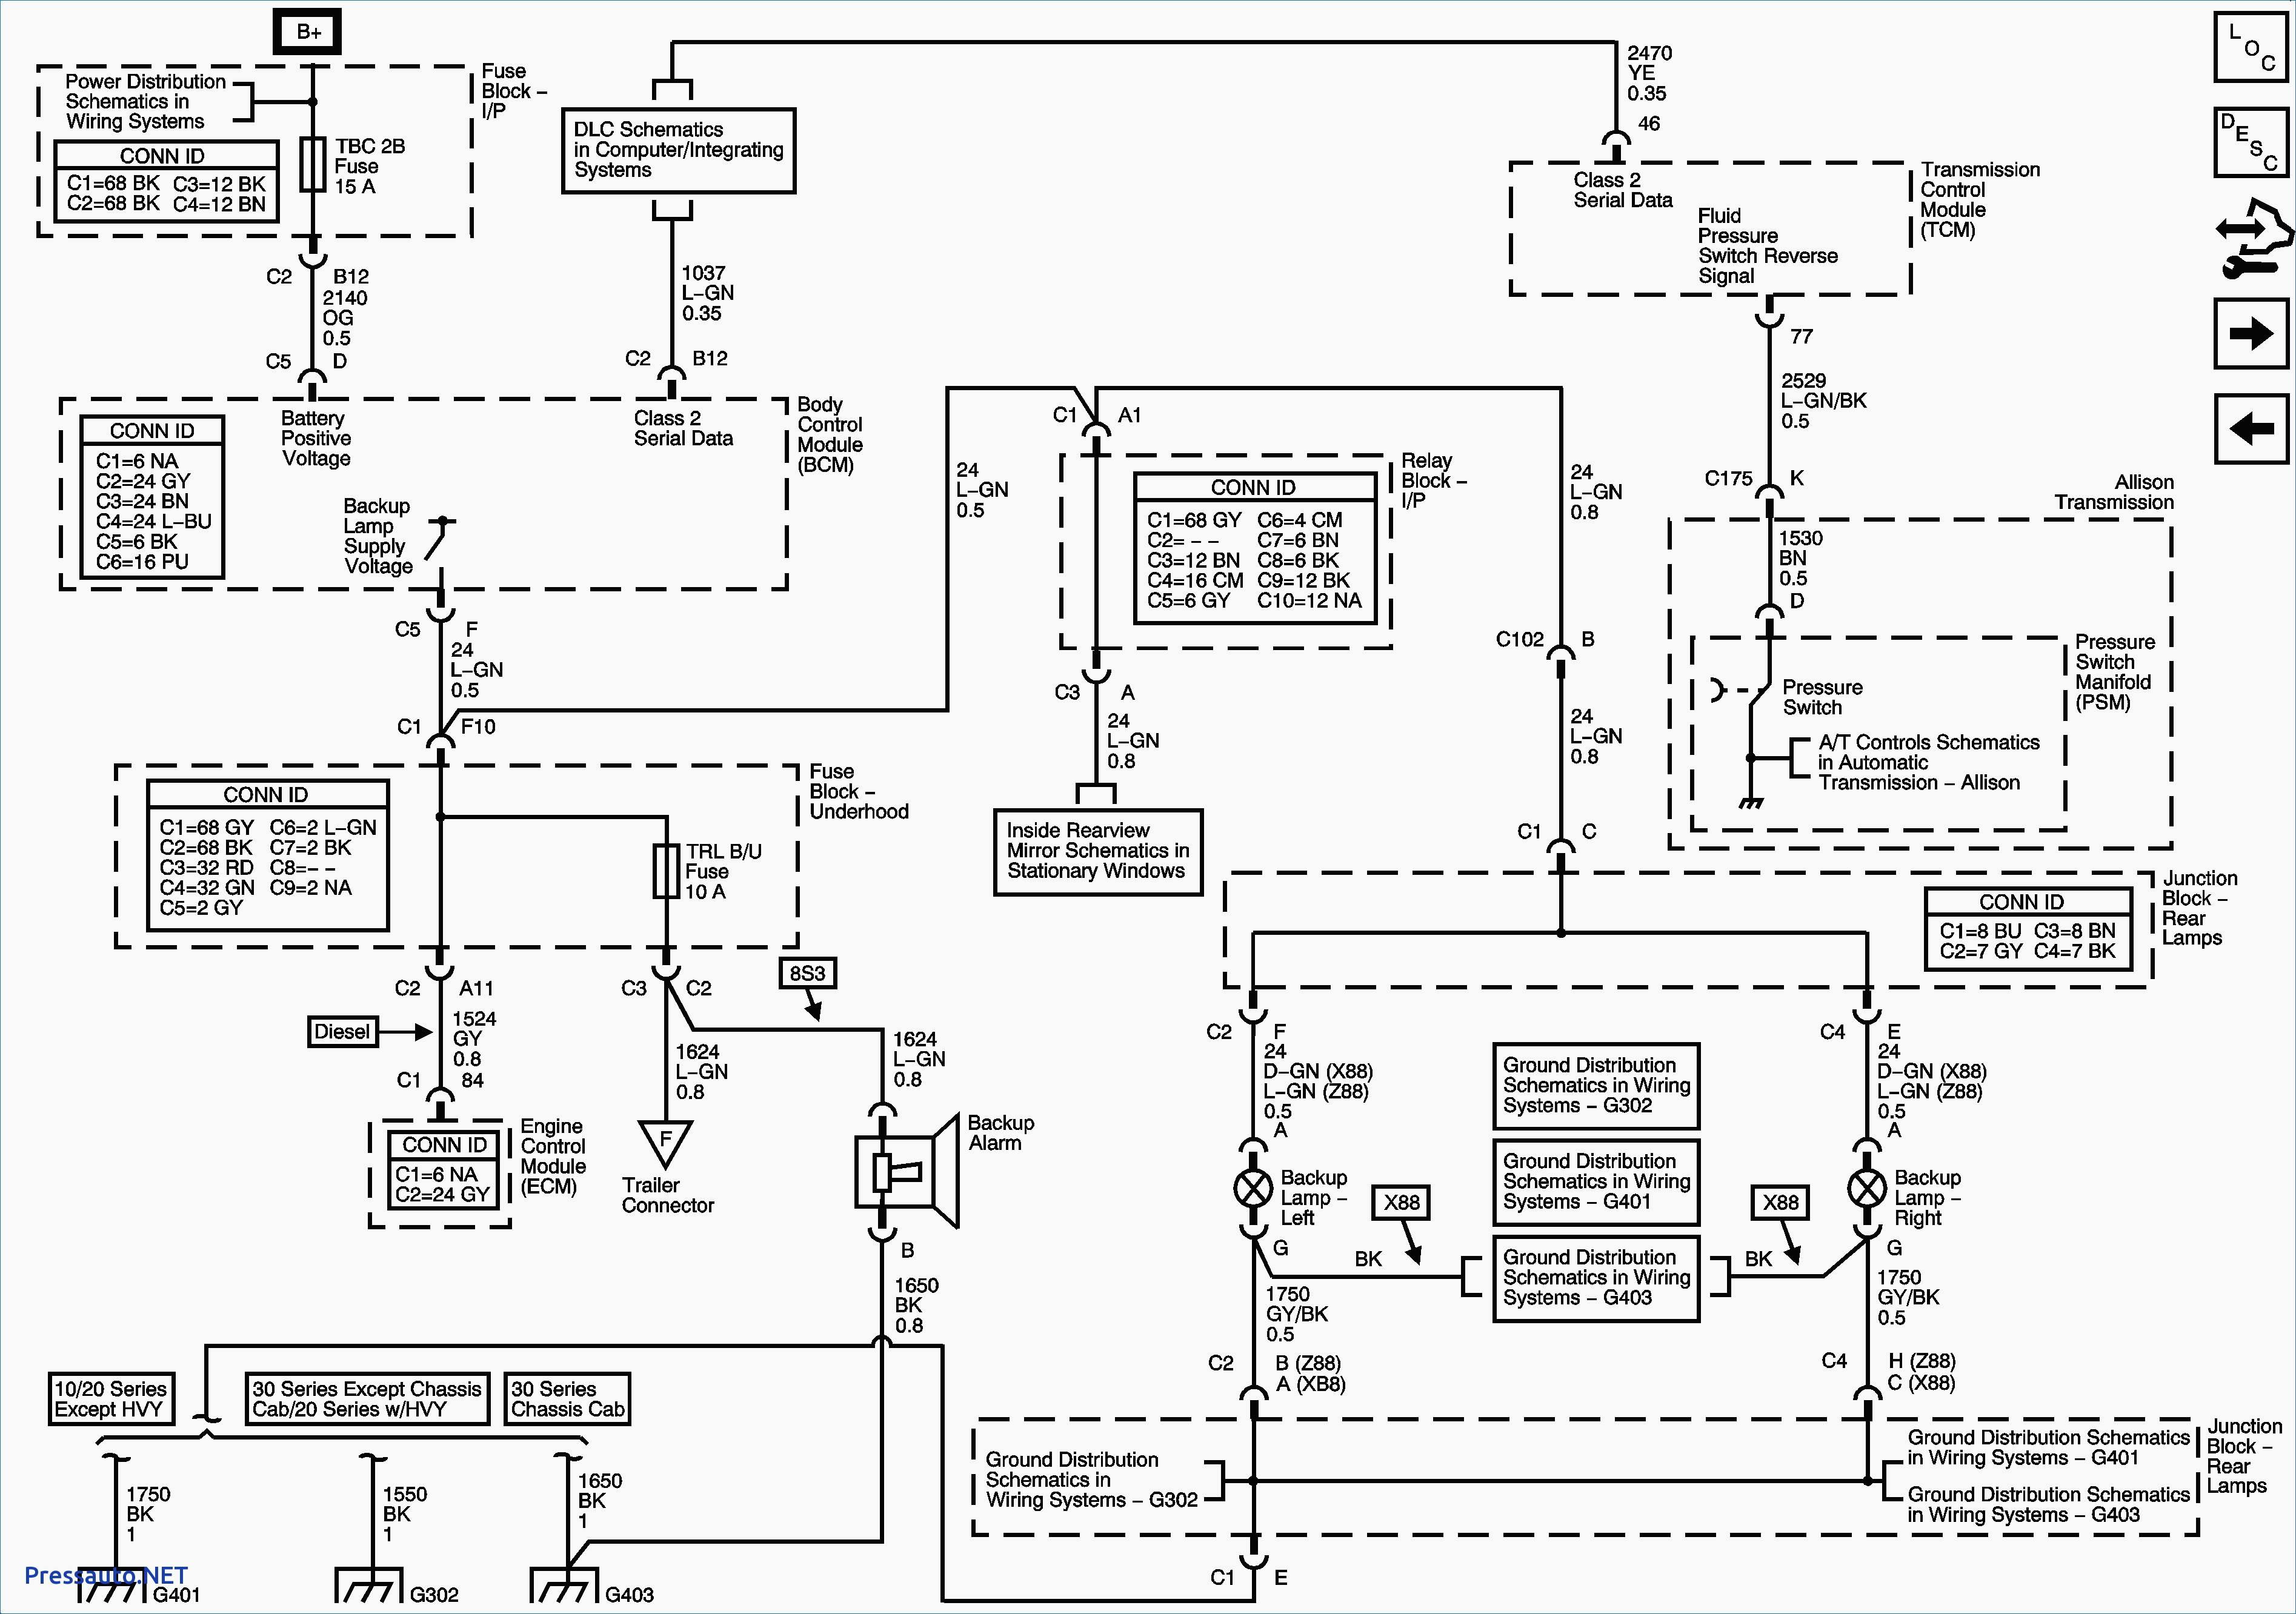 2006 Silverado Wiring Schematic - Wiring Diagrams Thumbs - Trailer Wiring Diagram For 2006 Chevy Silverado